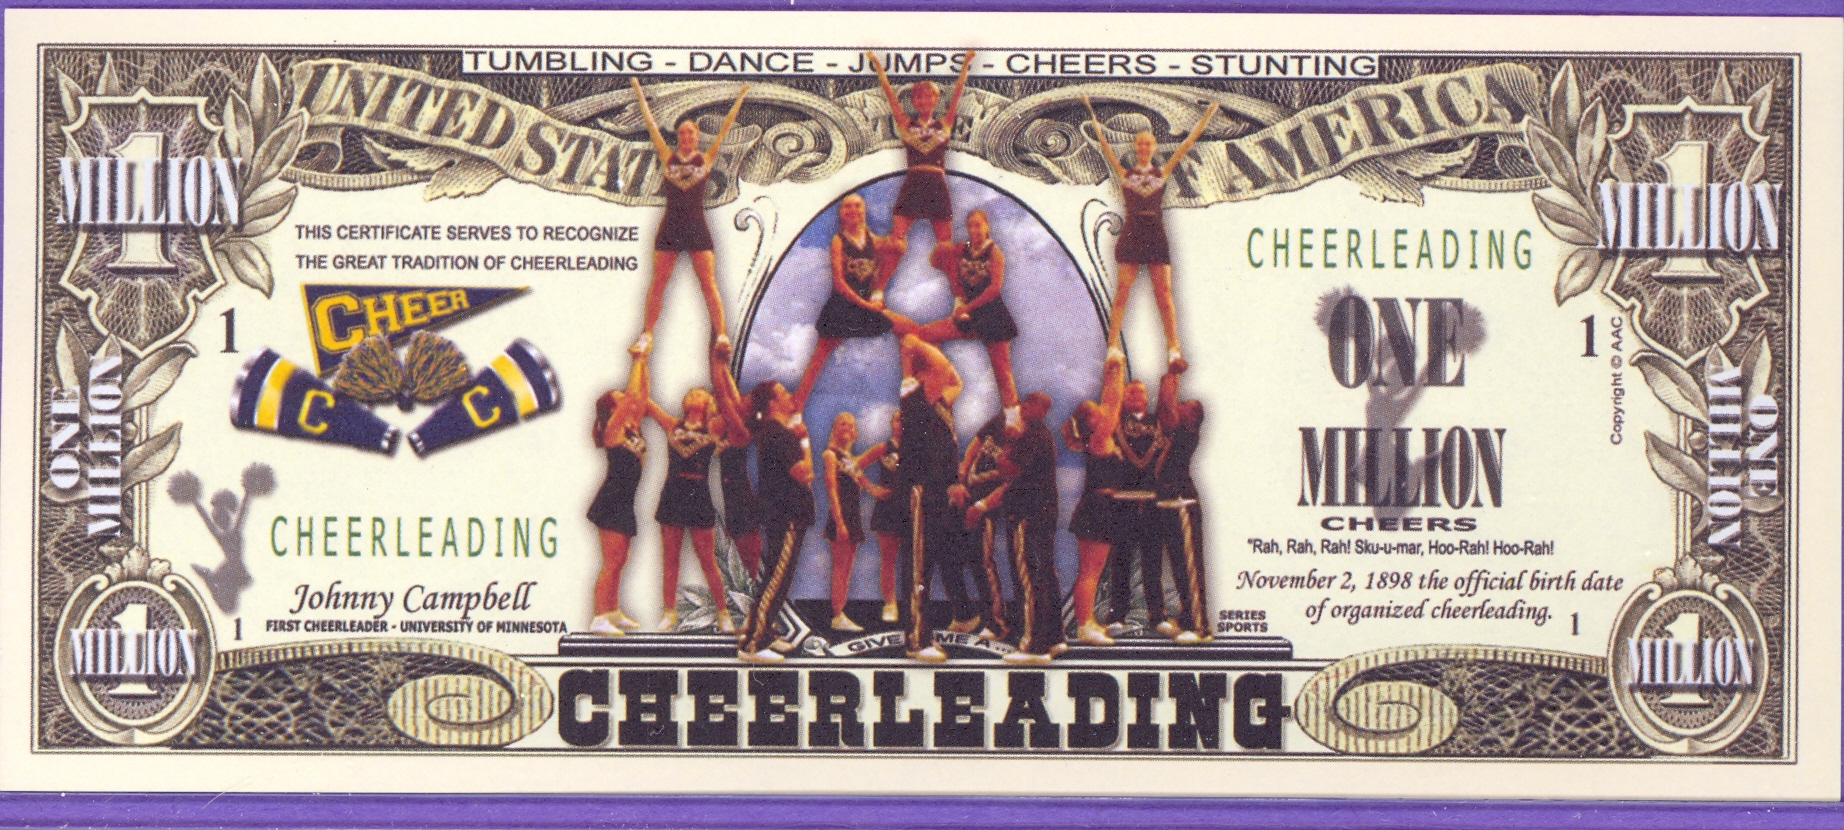 Cheerleading Million Dollar Fantasy or Novelty Note